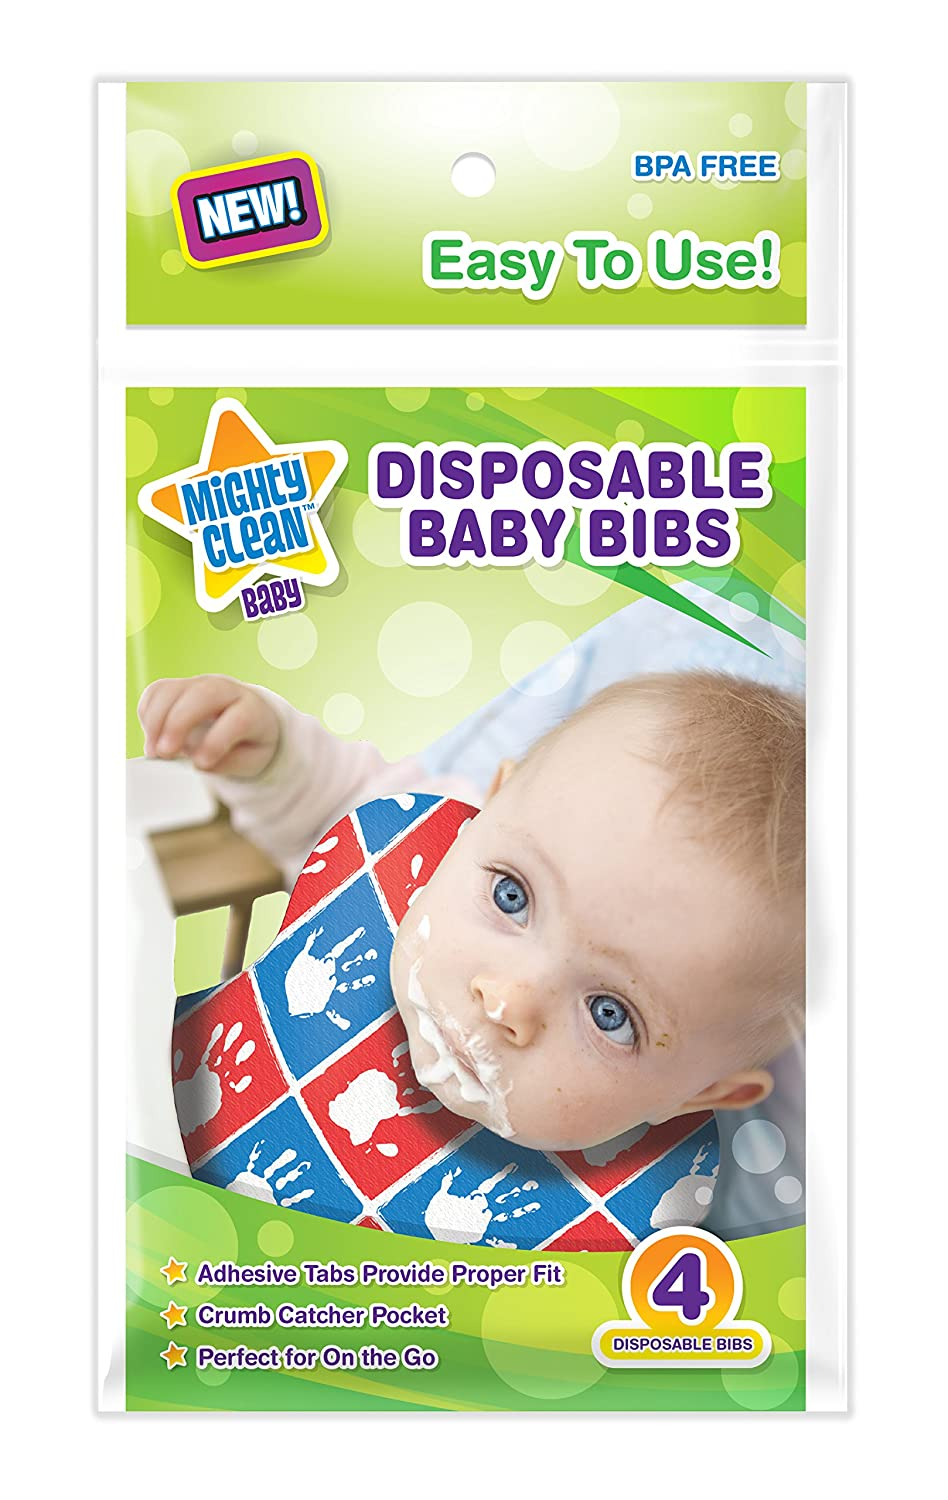 Mighty Clean Baby Disposable Baby Bibs 24 Count (4 bibs per package) Power Forward Ventures MCB-BB24